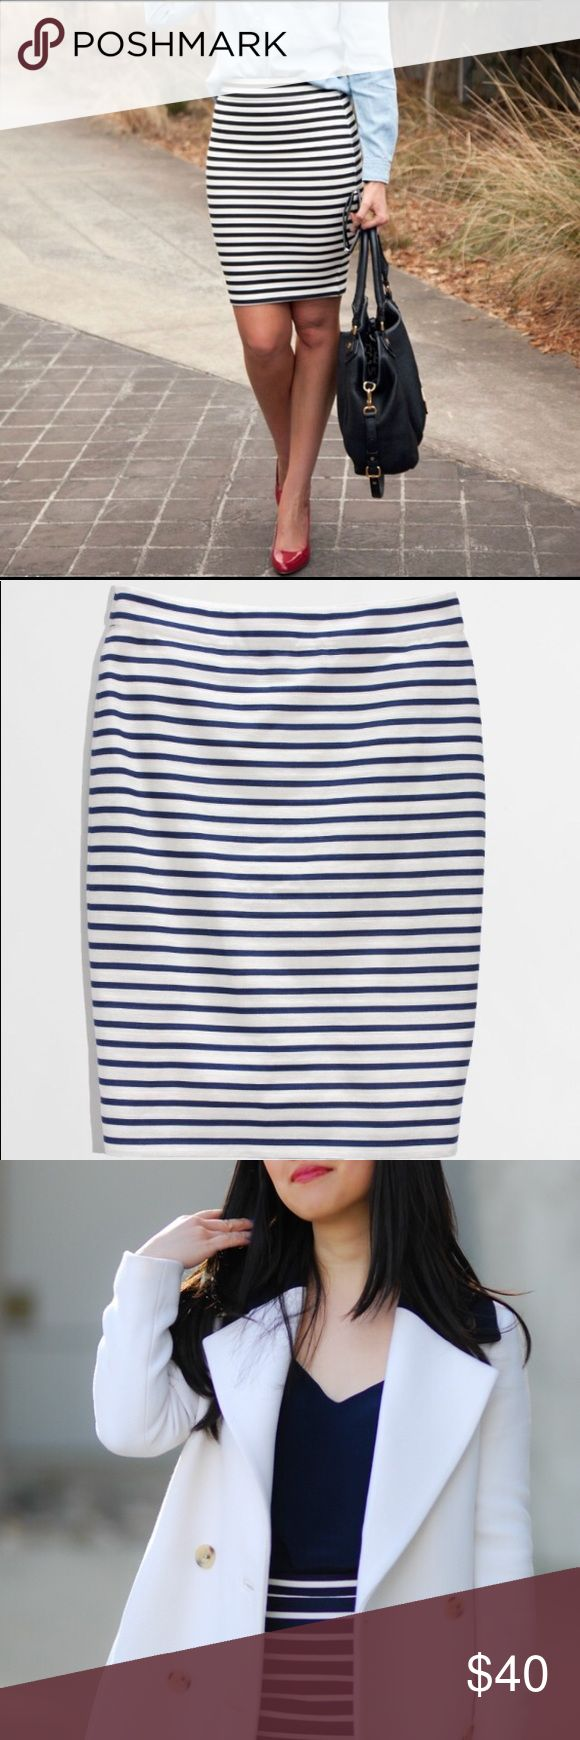 """J. Crew Pencil Skirt in Blue/White Nautical Stripe Form fitting. So sexy with a blouse & pumps. Only worn once & in brand new condition.  Cotton/linen. Sits at waist. 21 1/2"""" long. Back zip. Back vent. Lined. Machine wash. Import. Item 51764. J. Crew Skirts Pencil"""